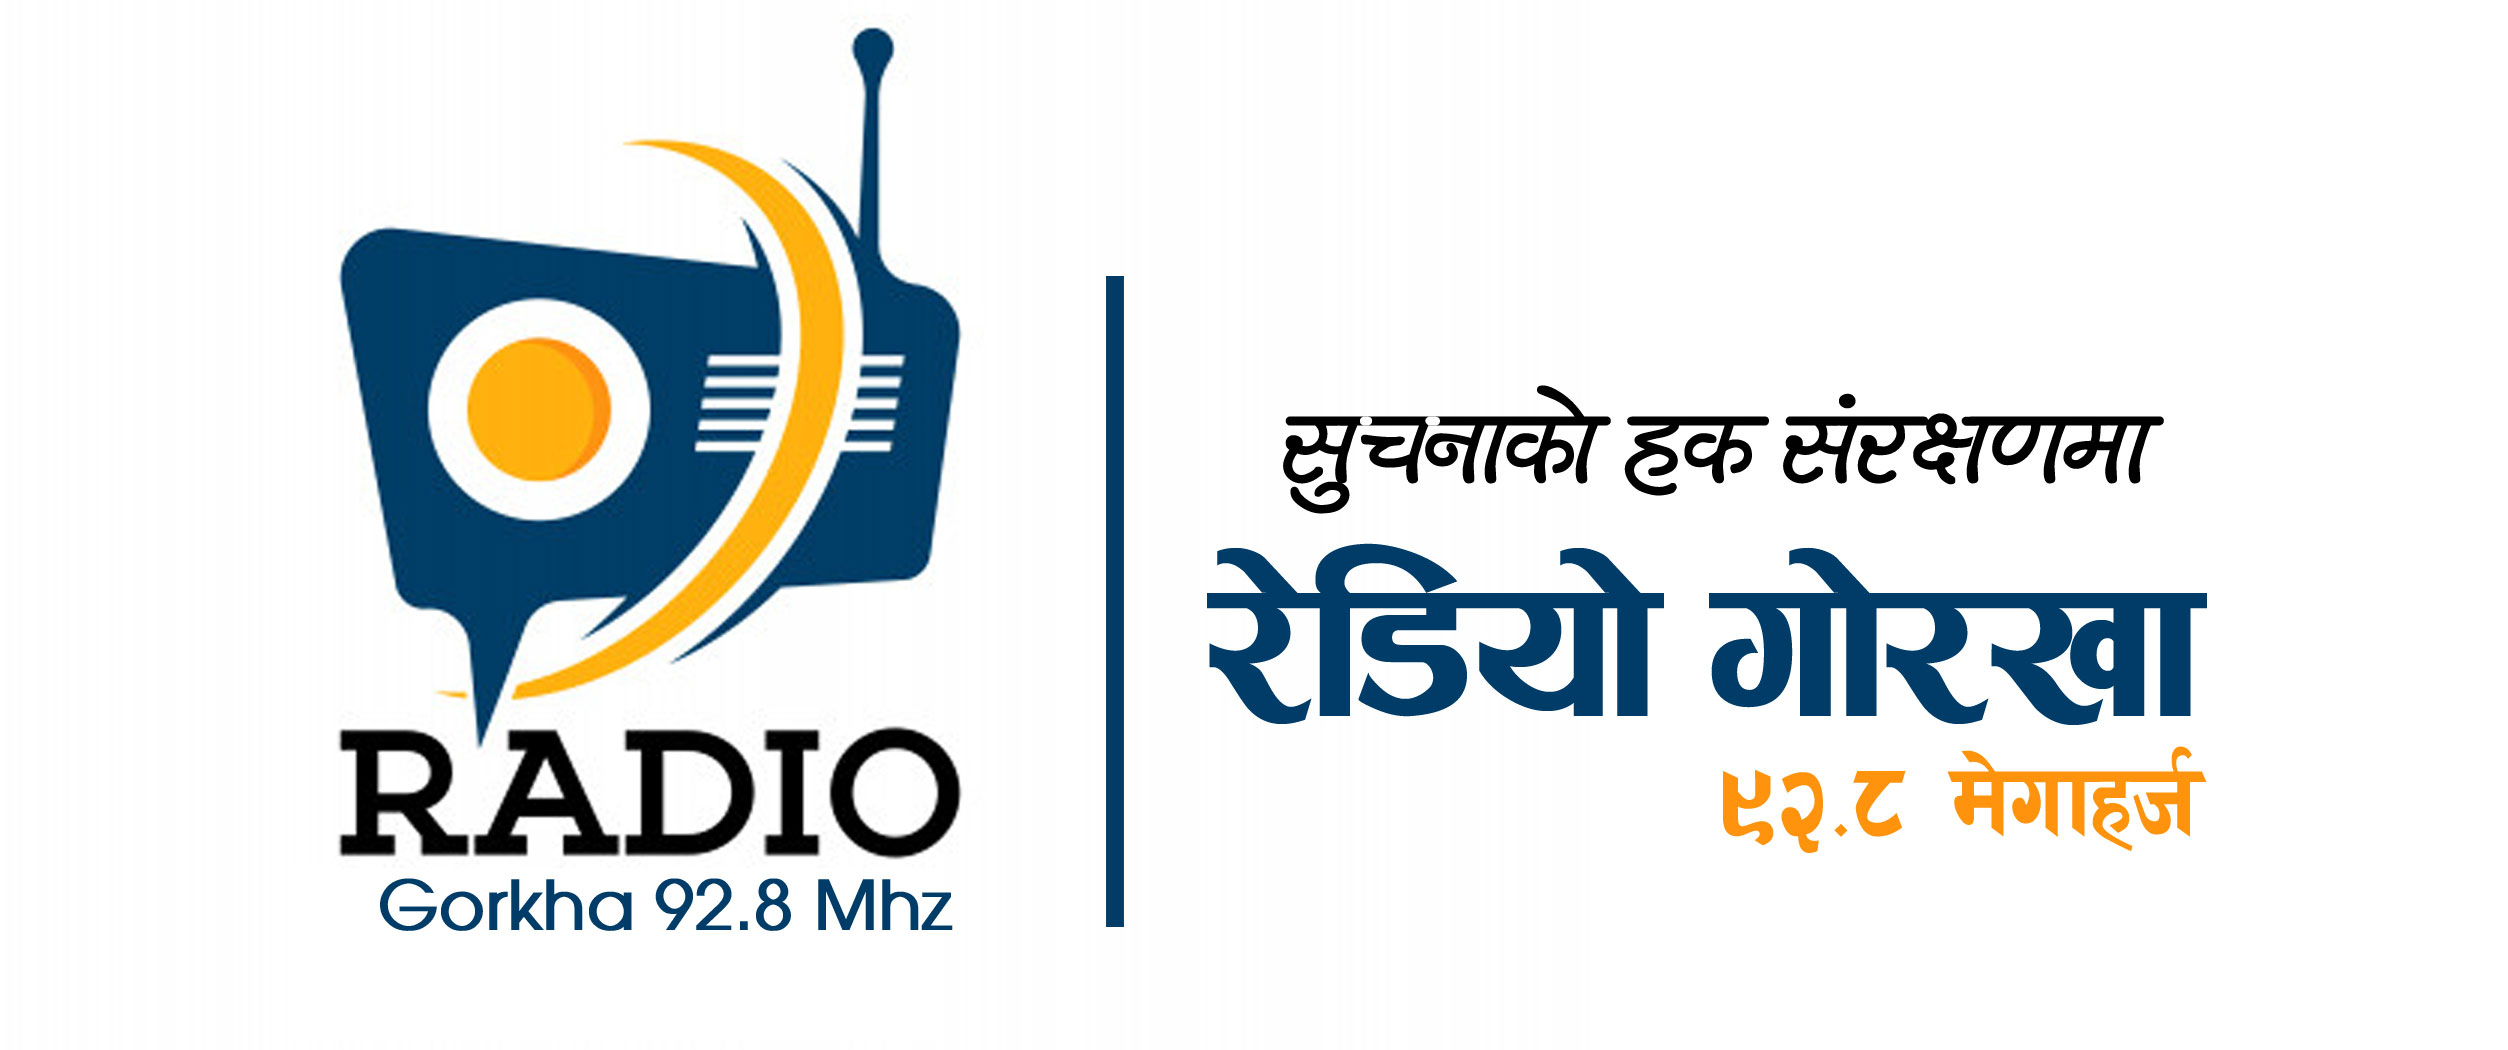 सूचनाको हक संरक्षणमा रेडियो गोरखा Radio Gorkha 92.8 MHz is the first community radio of Gorkha operated by Gorkha Development & Communication Center (Gorkha Bikas Tatha Sanchar Kendra) Gorkha which is funded by one hundred sixty four reputed personalities (share holders) of Gorkha. It has officially laid down its test transmission in Srawan 05, 2064 BS. Since Asoj 16, 2064 it starts regular transmission. Now Radio Gorkha has been broadcasting its radio programmes for 18 hours a day regularly. (please: if you need any information call to Radio Gorkha 92.8MHz.